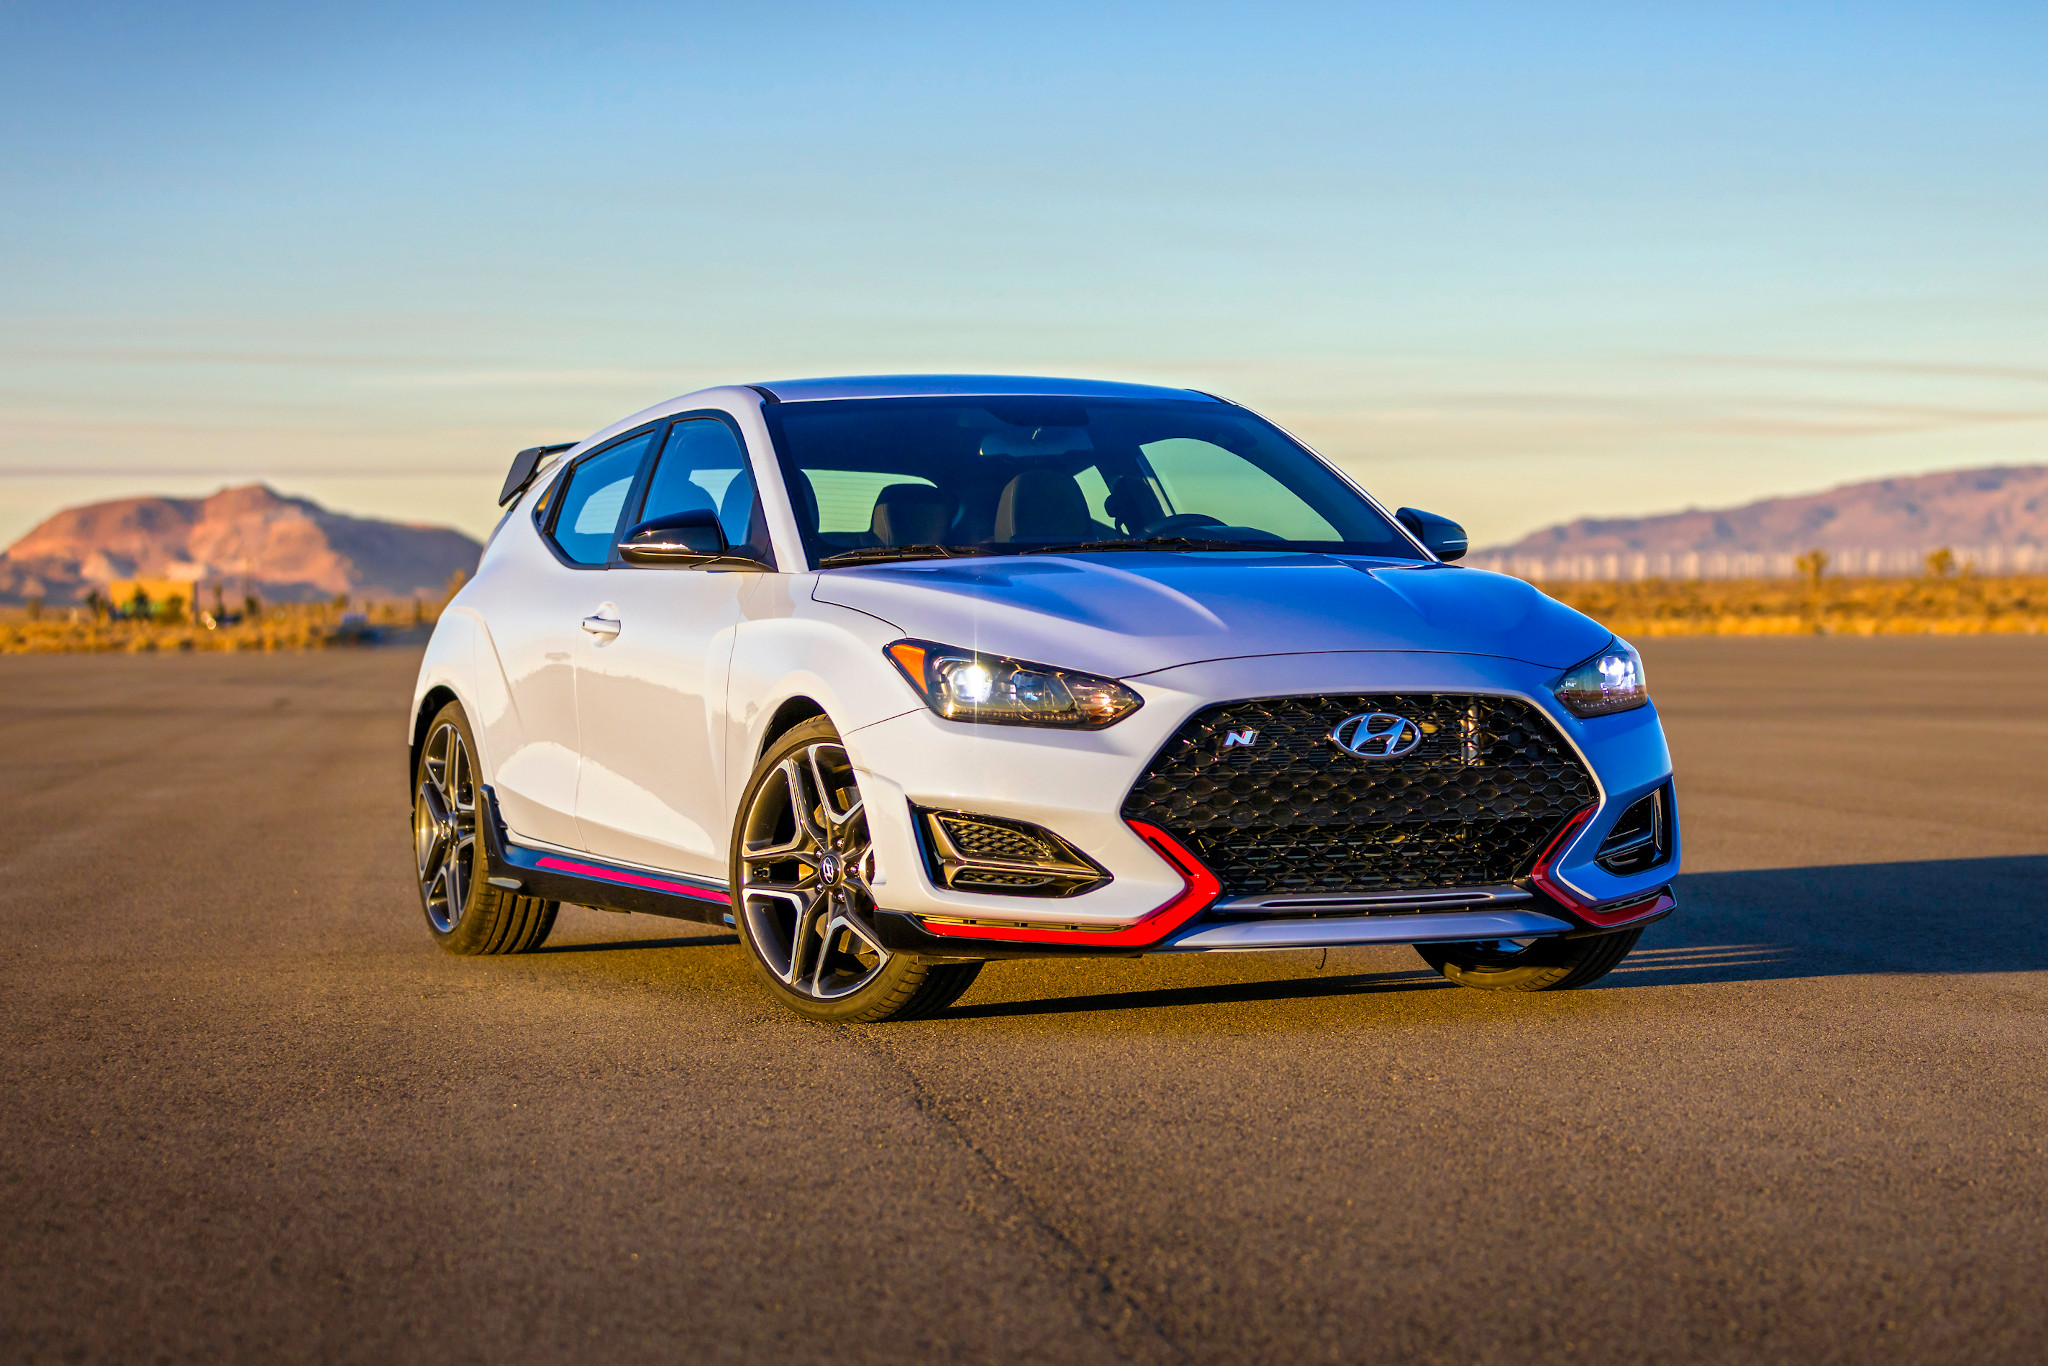 2020 Most Fun-to-Drive Car of the Year